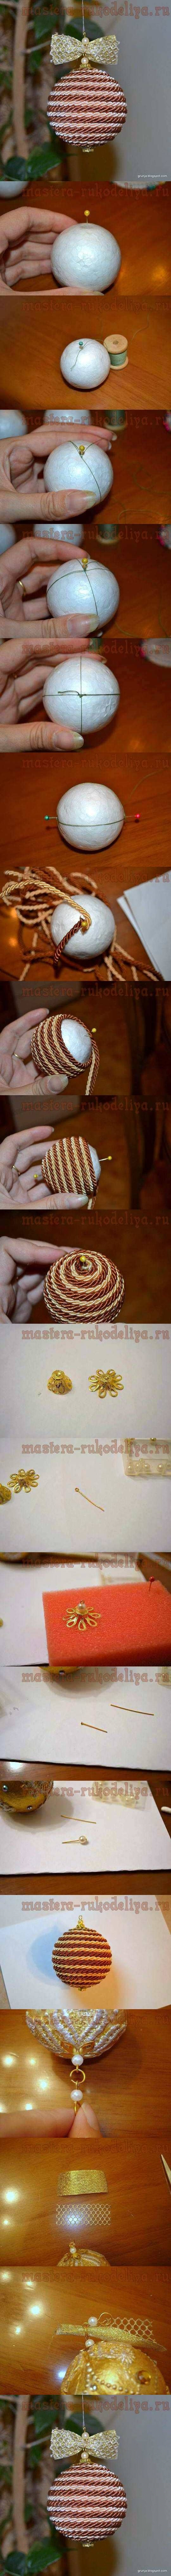 DIY Ball of String DIY Projects | UsefulDIY.com Follow Us on Facebook ==> http://www.facebook.com/UsefulDiy